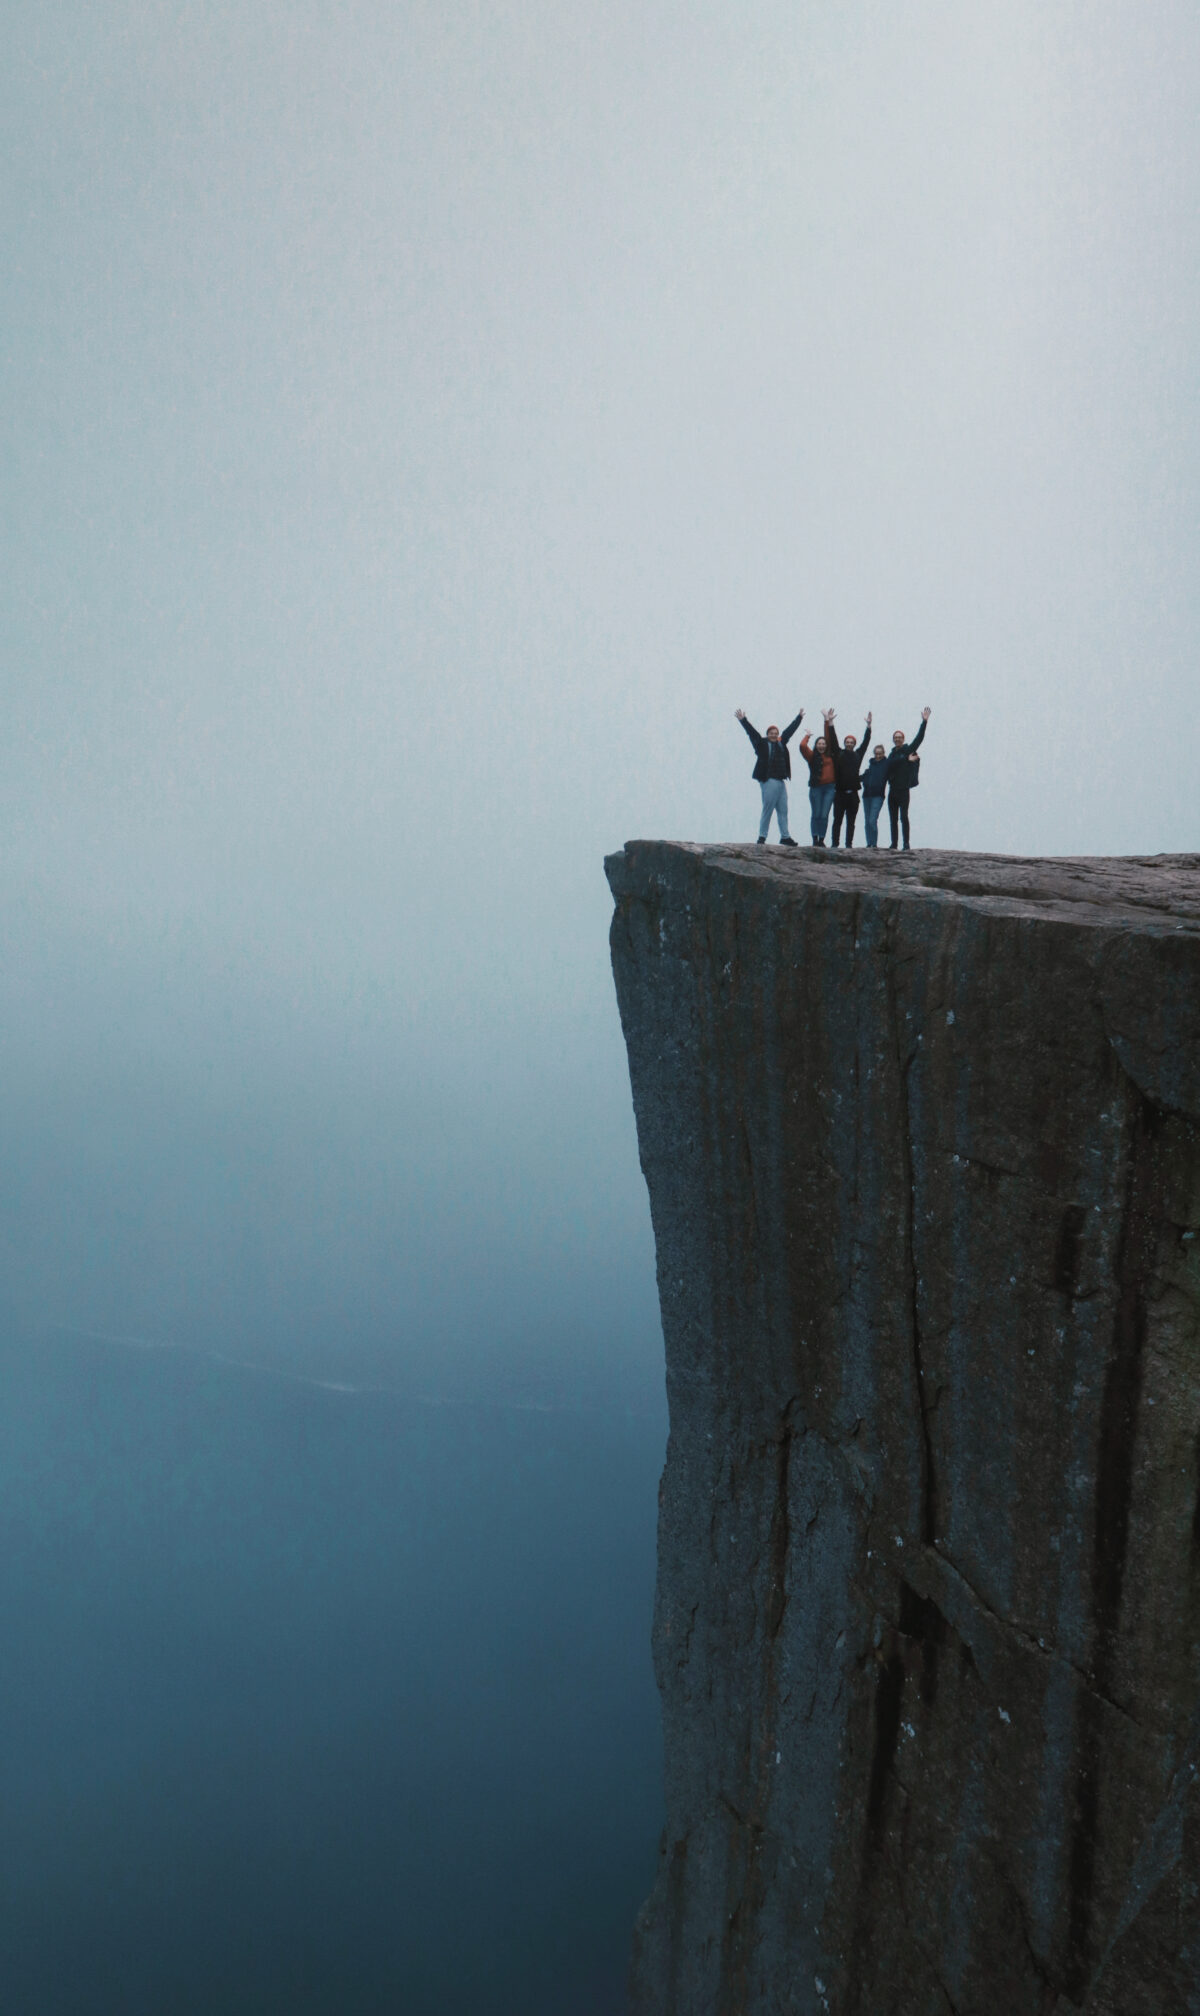 Group of people standing on the Pulpit Rock / Preikestolen